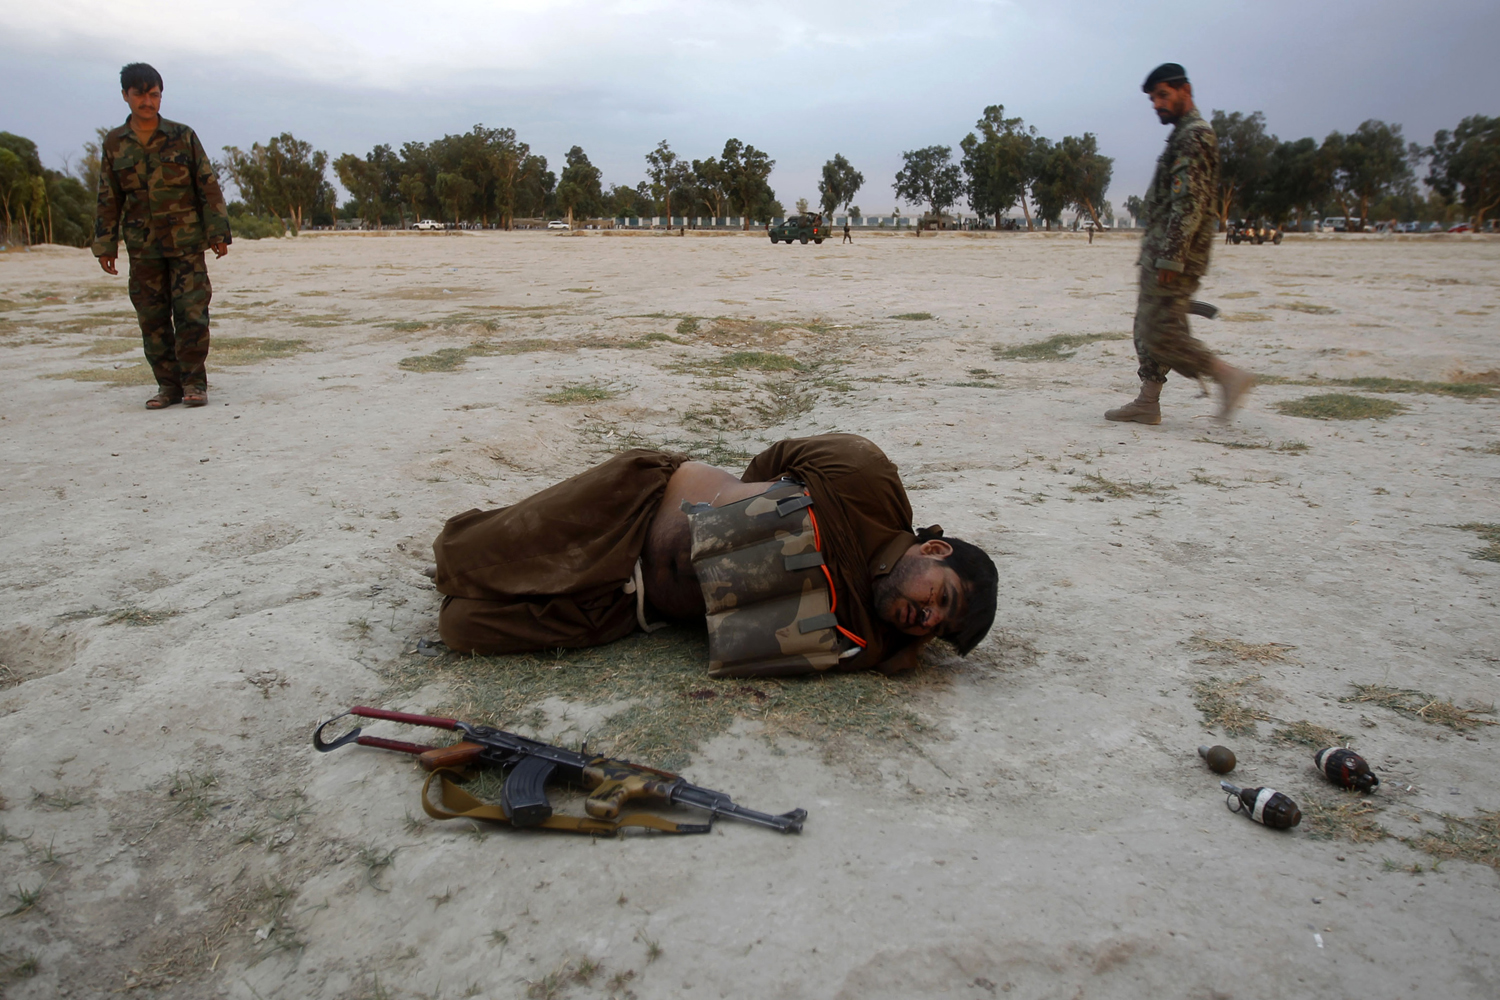 June 30, 2013. Afghan National Army (ANA) soldiers approach a captured would-be suicide attacker after his vest was defused in Jalalabad province.